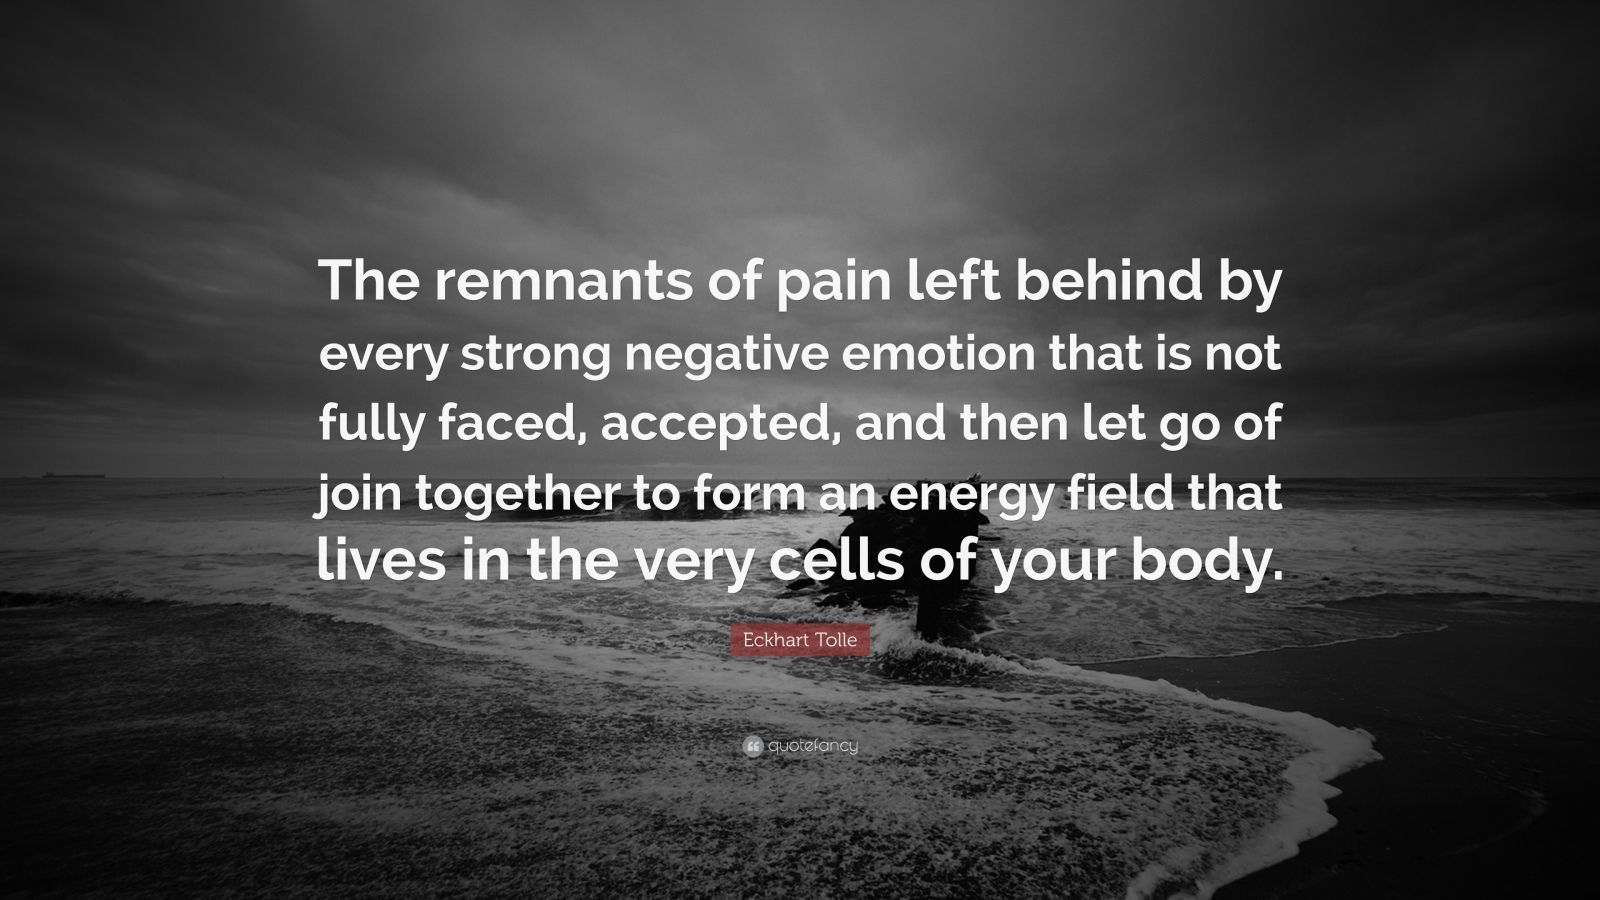 "Eckhart Tolle Quote: ""The remnants of pain left behind by every strong negative emotion that is not fully faced, accepted, and then let go of join together to form an energy field that lives in the very cells of your body."""